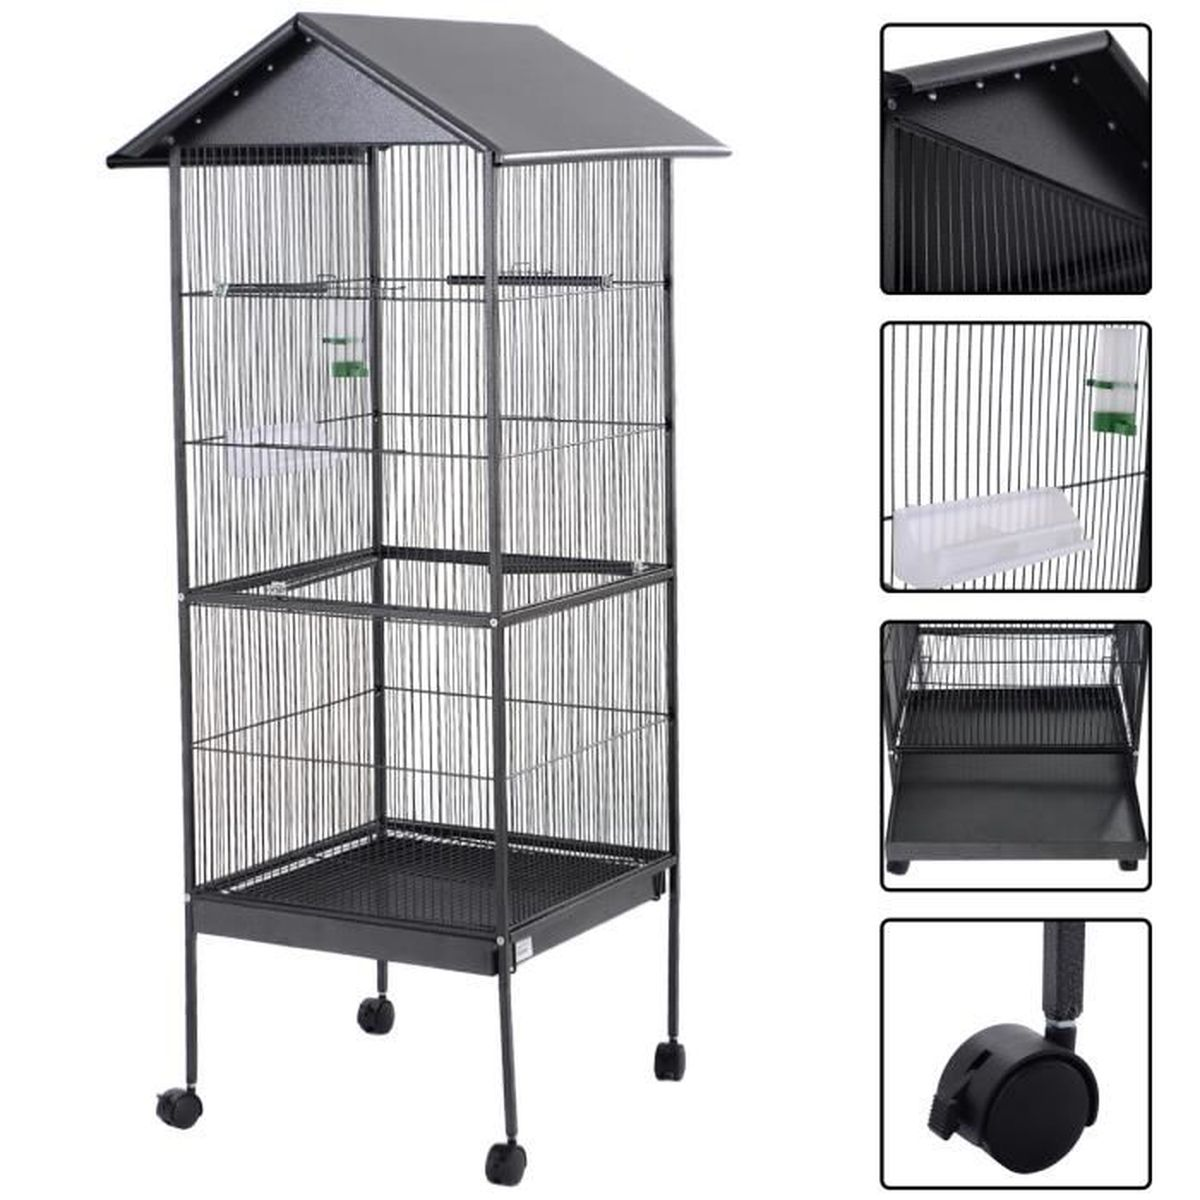 grande cage oiseaux achat vente pas cher. Black Bedroom Furniture Sets. Home Design Ideas